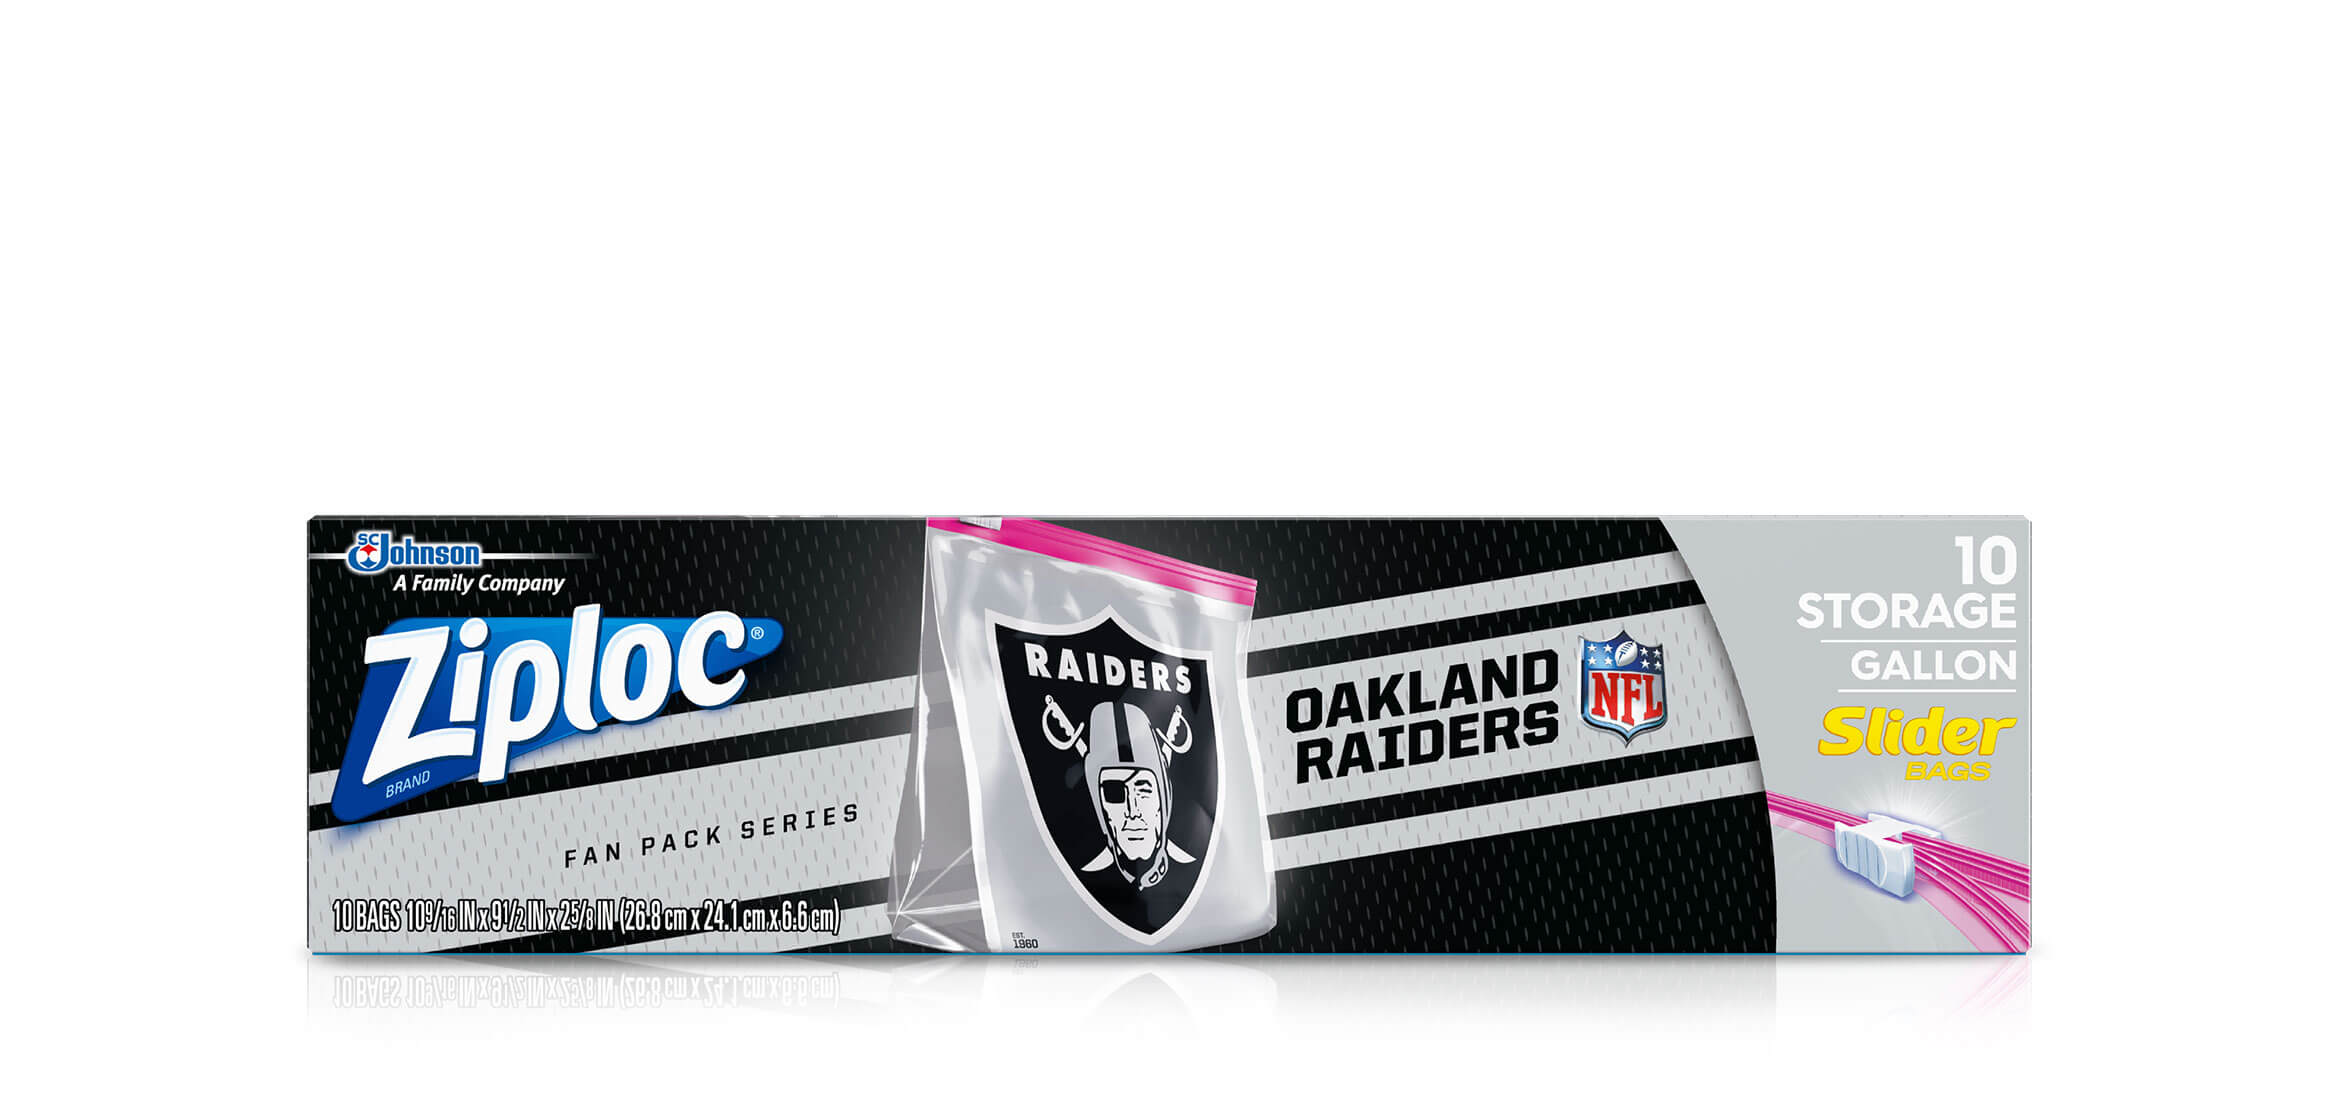 Oakland-Raiders-Slider-Storage-Gallon-Hero-2X